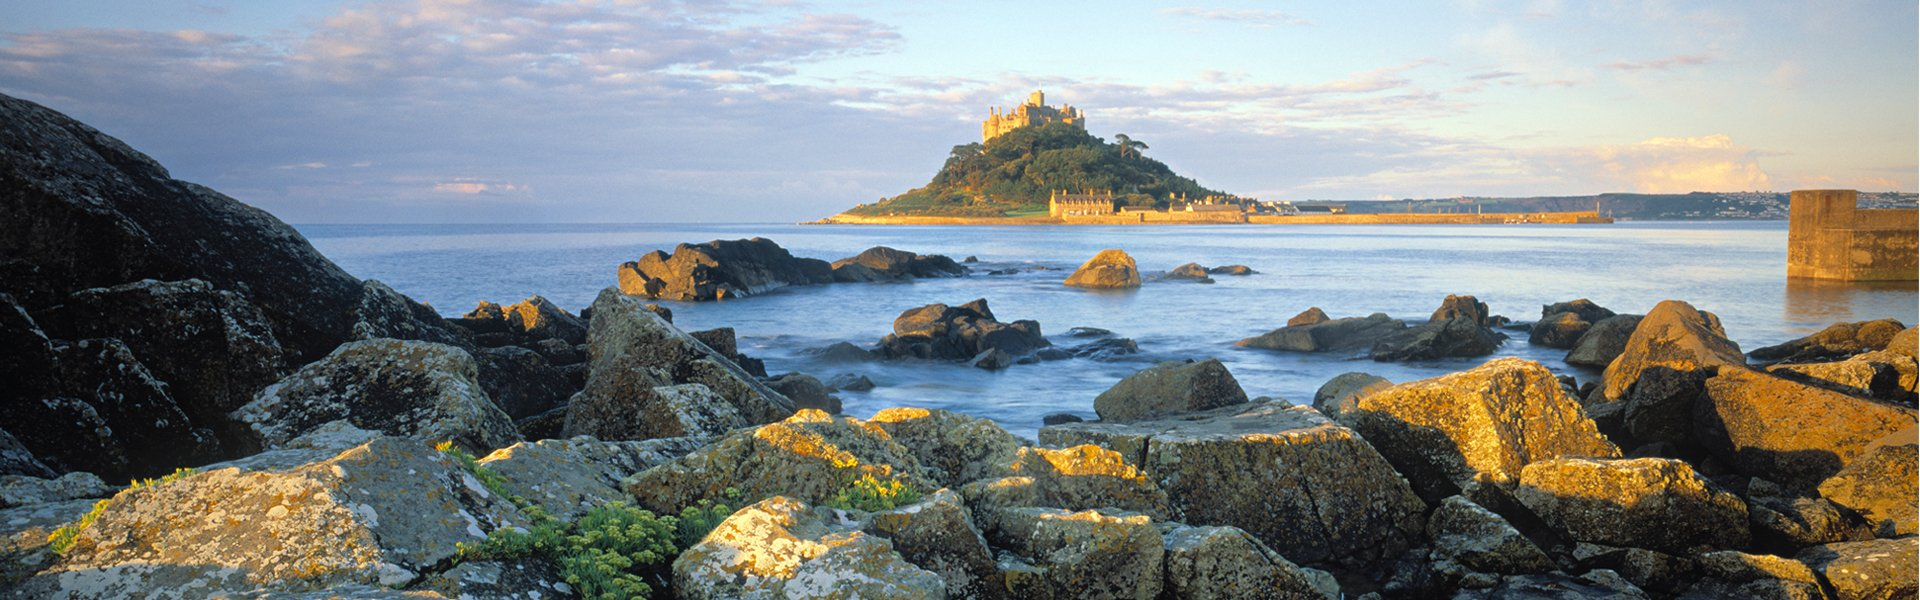 Saint Michael's Mount, Groot-Brittannië